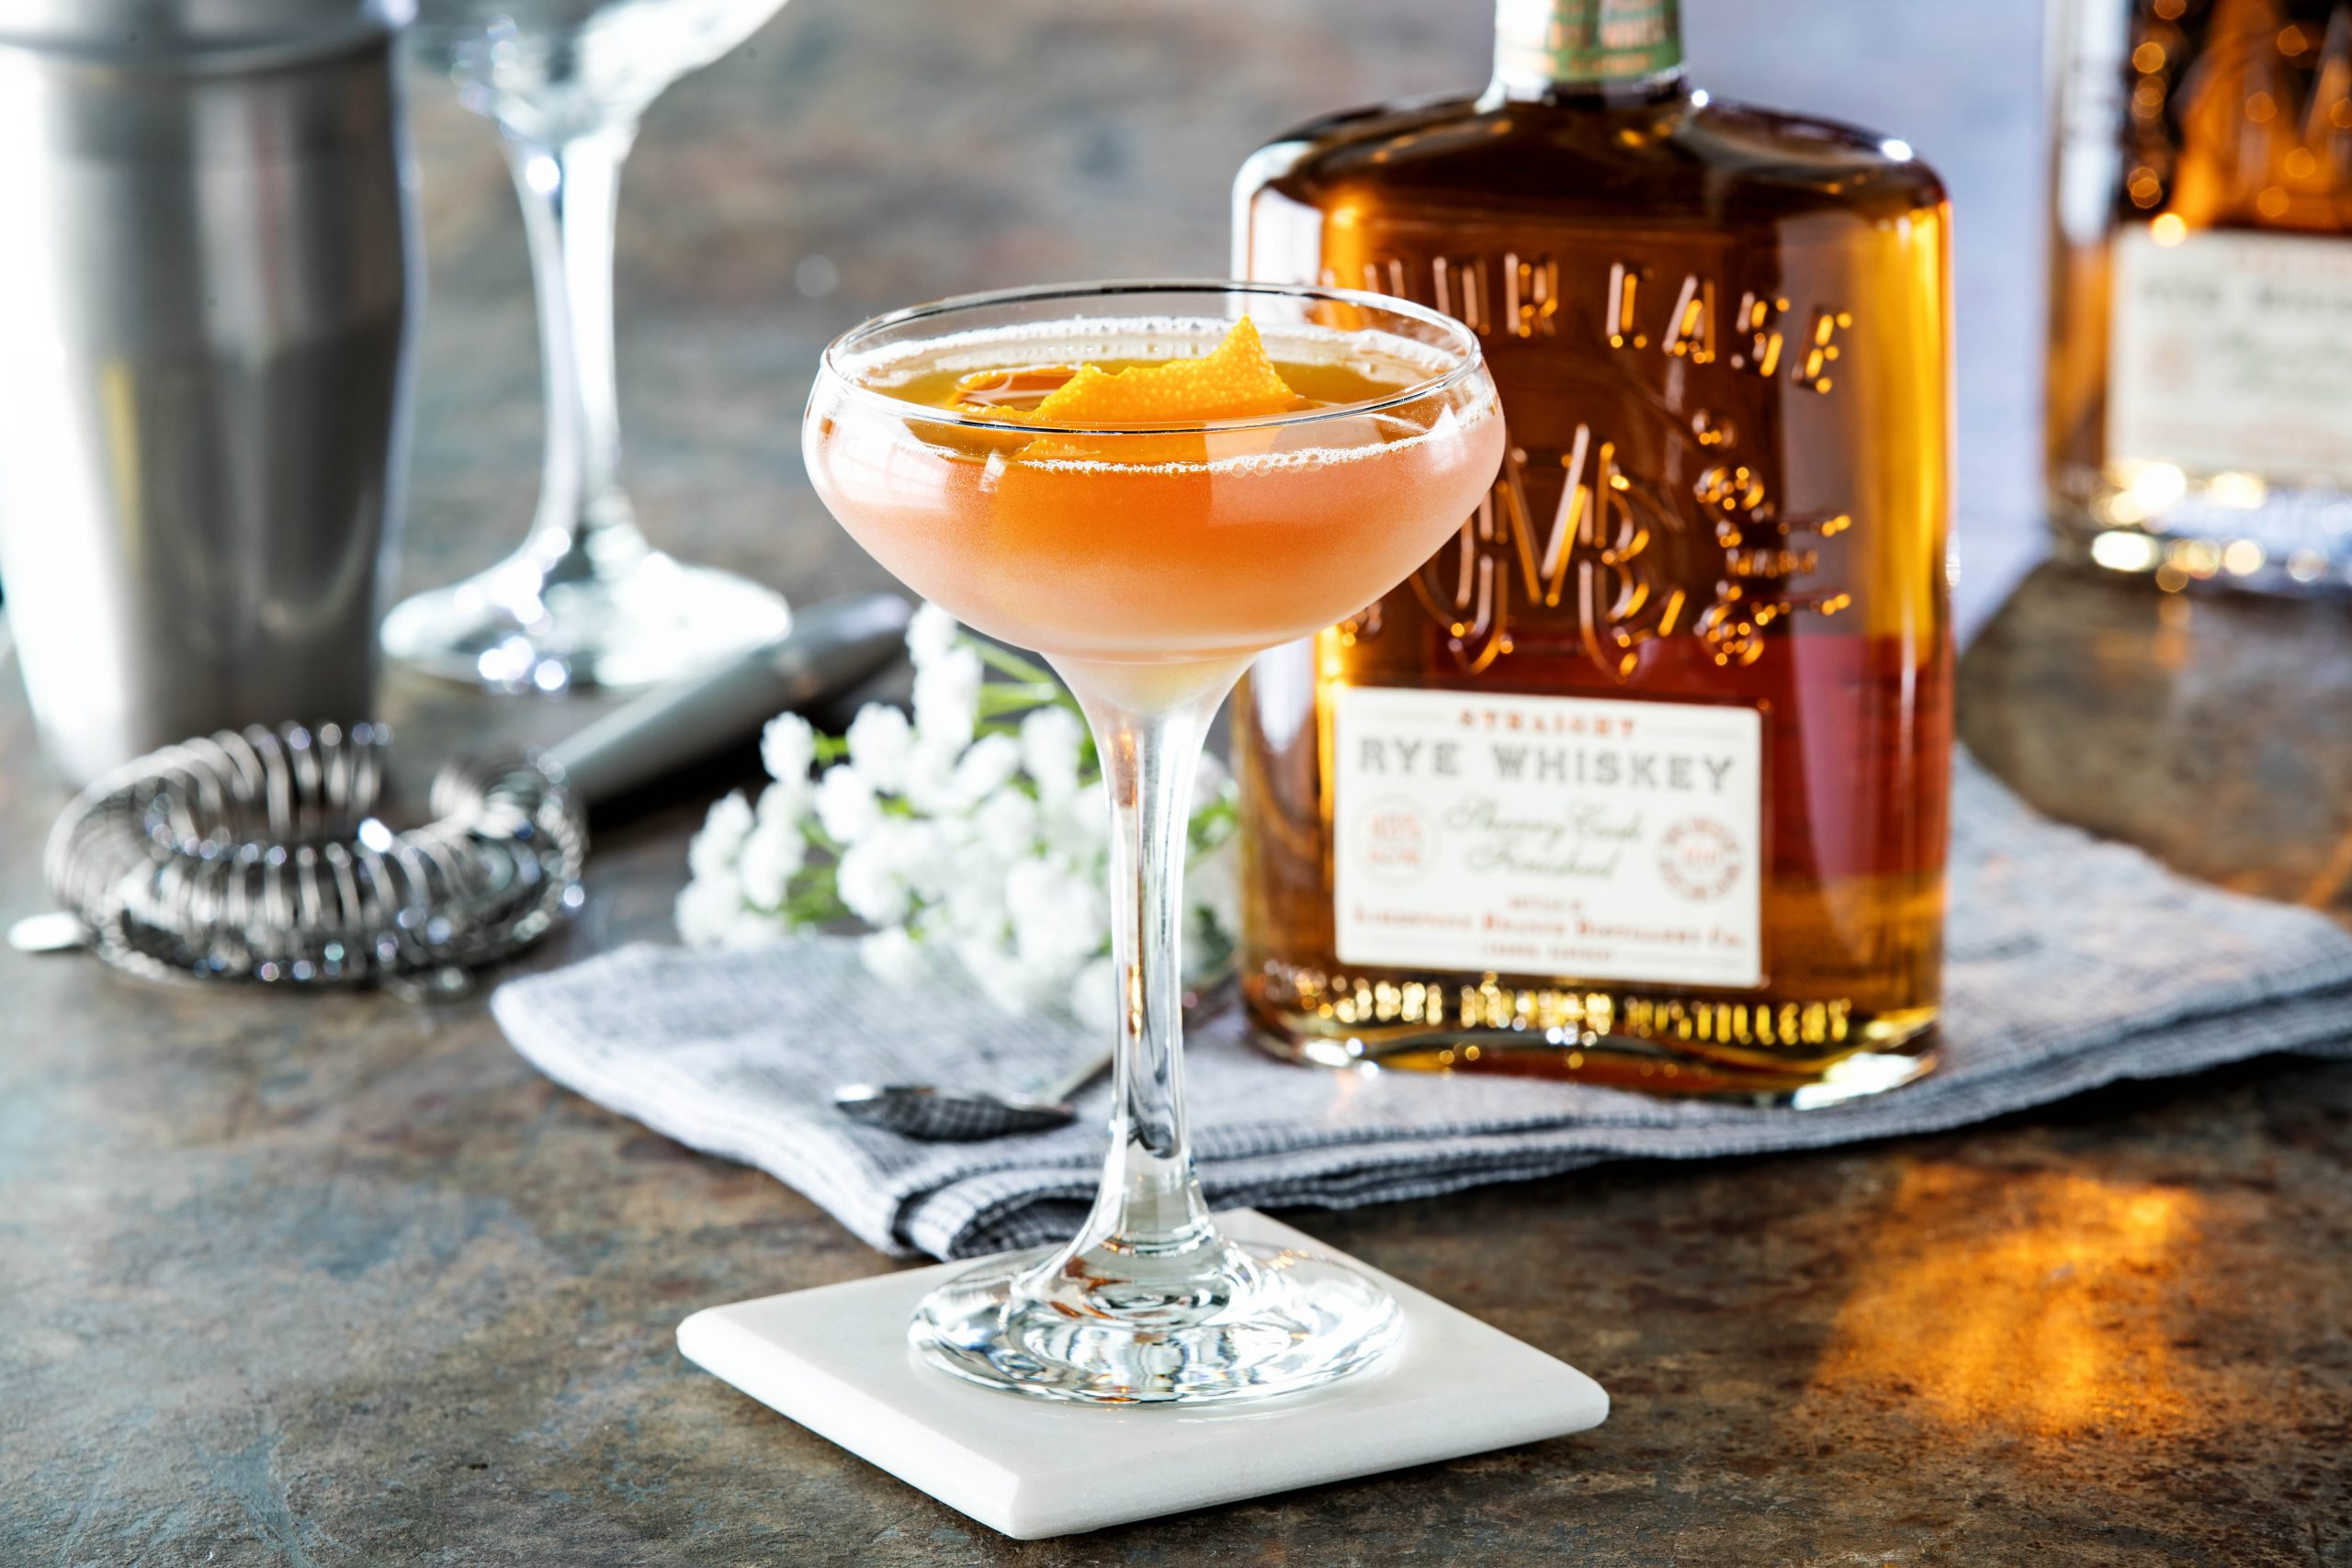 3 Rye Whiskey Manhattan Cocktails to Try Now